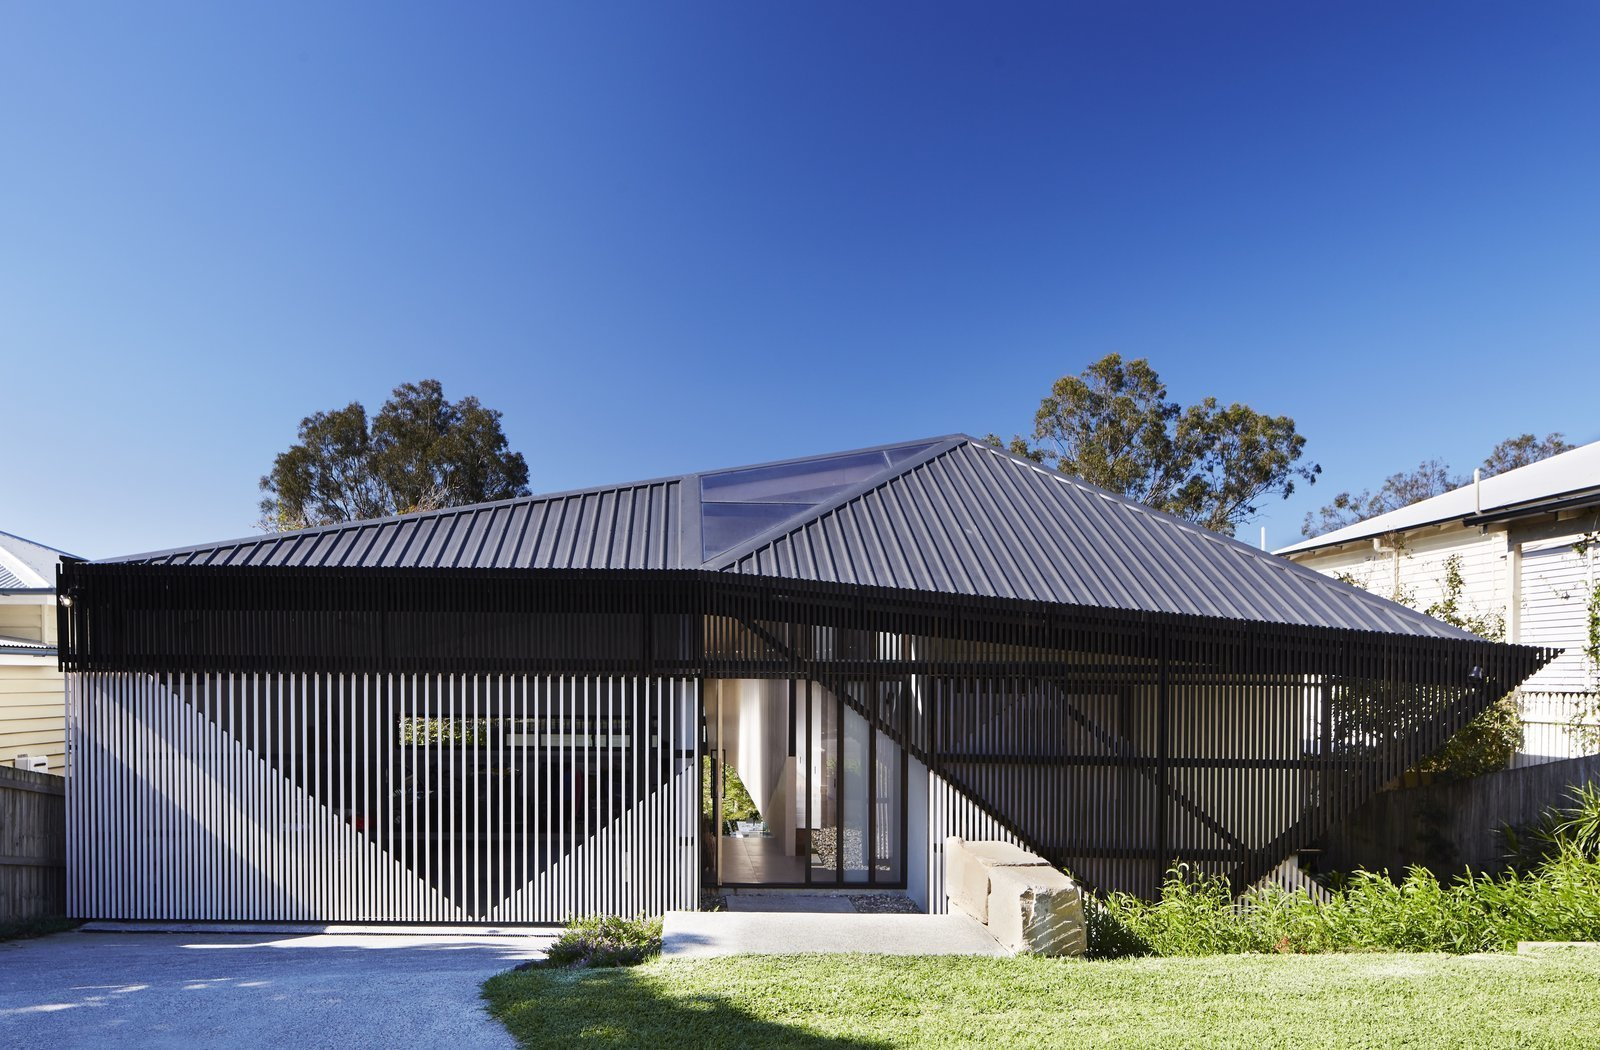 Using slats with varieds widths of space between them, Bureau Proberts created a striking angular slatted façade for this Brisbane home, which reveals triangular shapes, while hinting at the life concealed within. Tagged: Exterior, Metal Roof Material, and House.  Best Photos from 9 Best Homes With Interesting Screened Facades